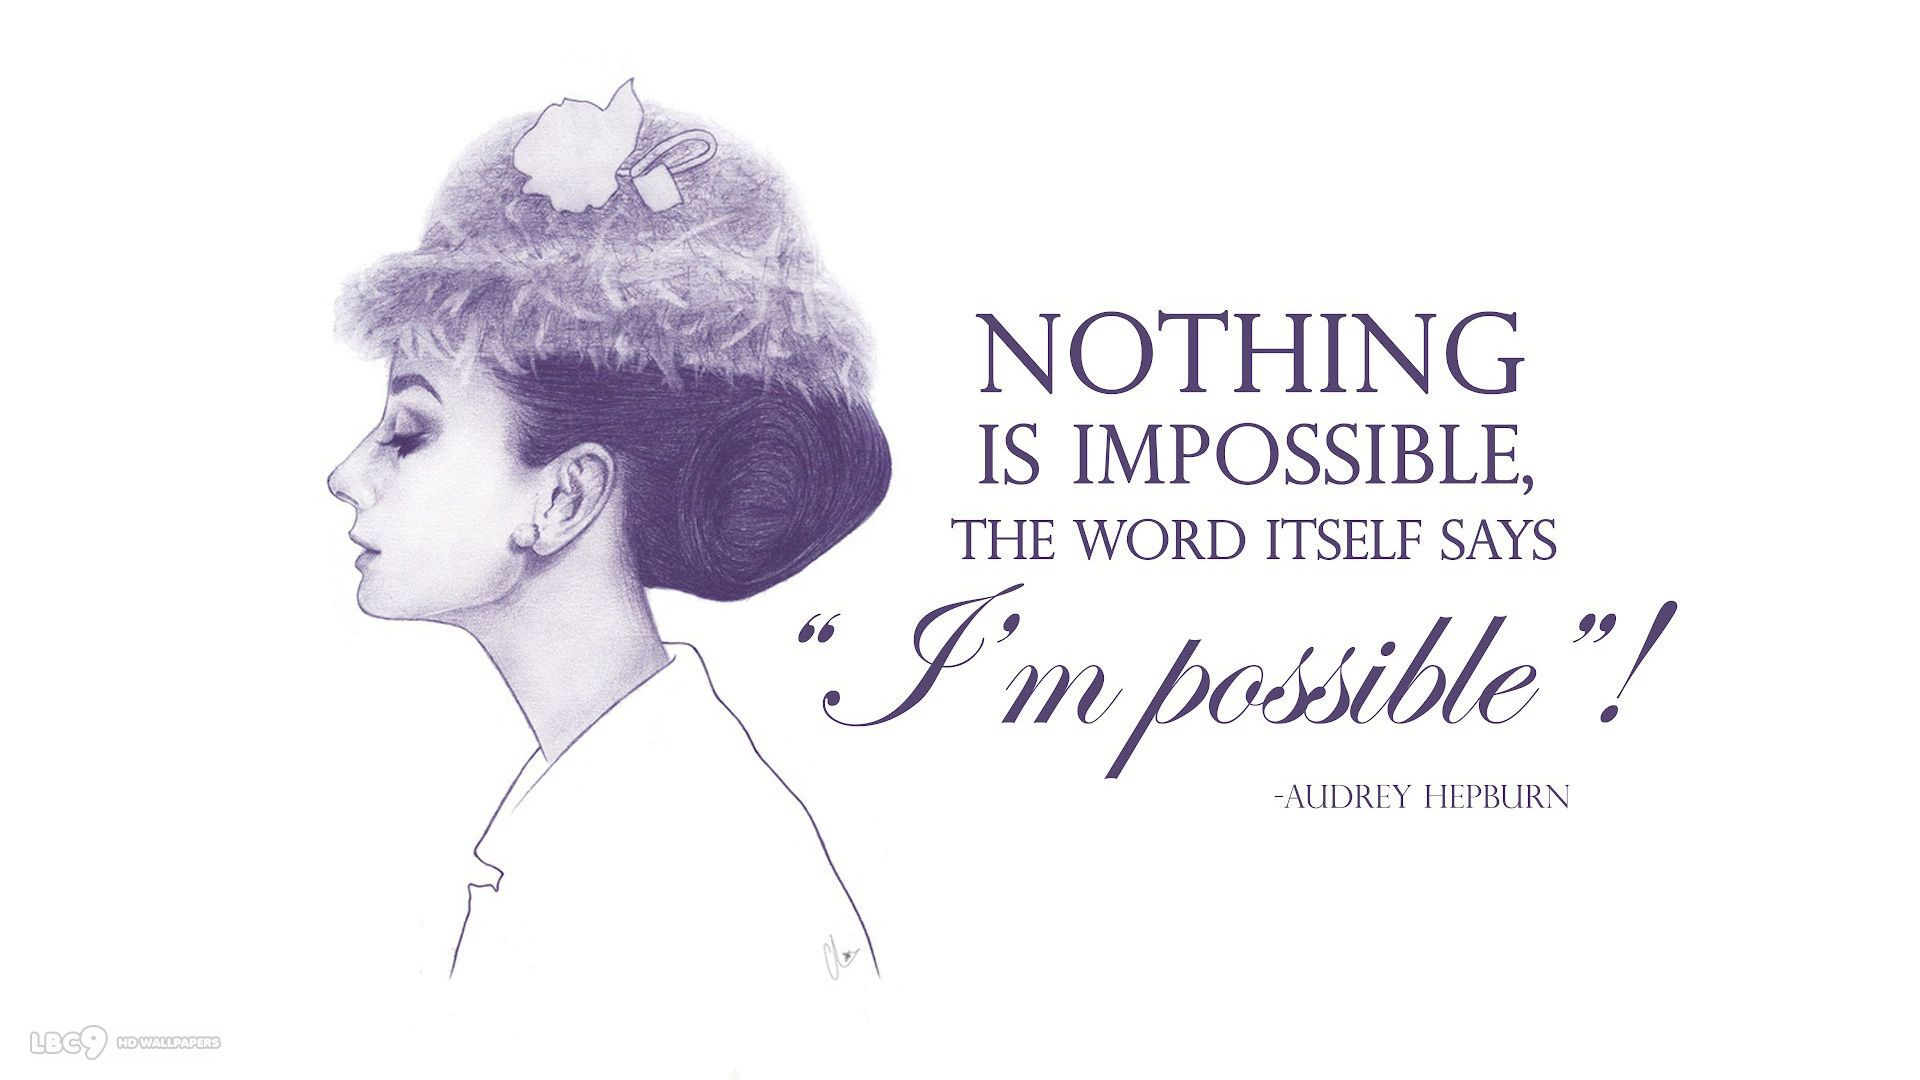 Nothing Is Impossible Wallpapers And Typography Hd Backgrounds Nothing Is Impossible Wallpaper Nothing Is Impossible Typography